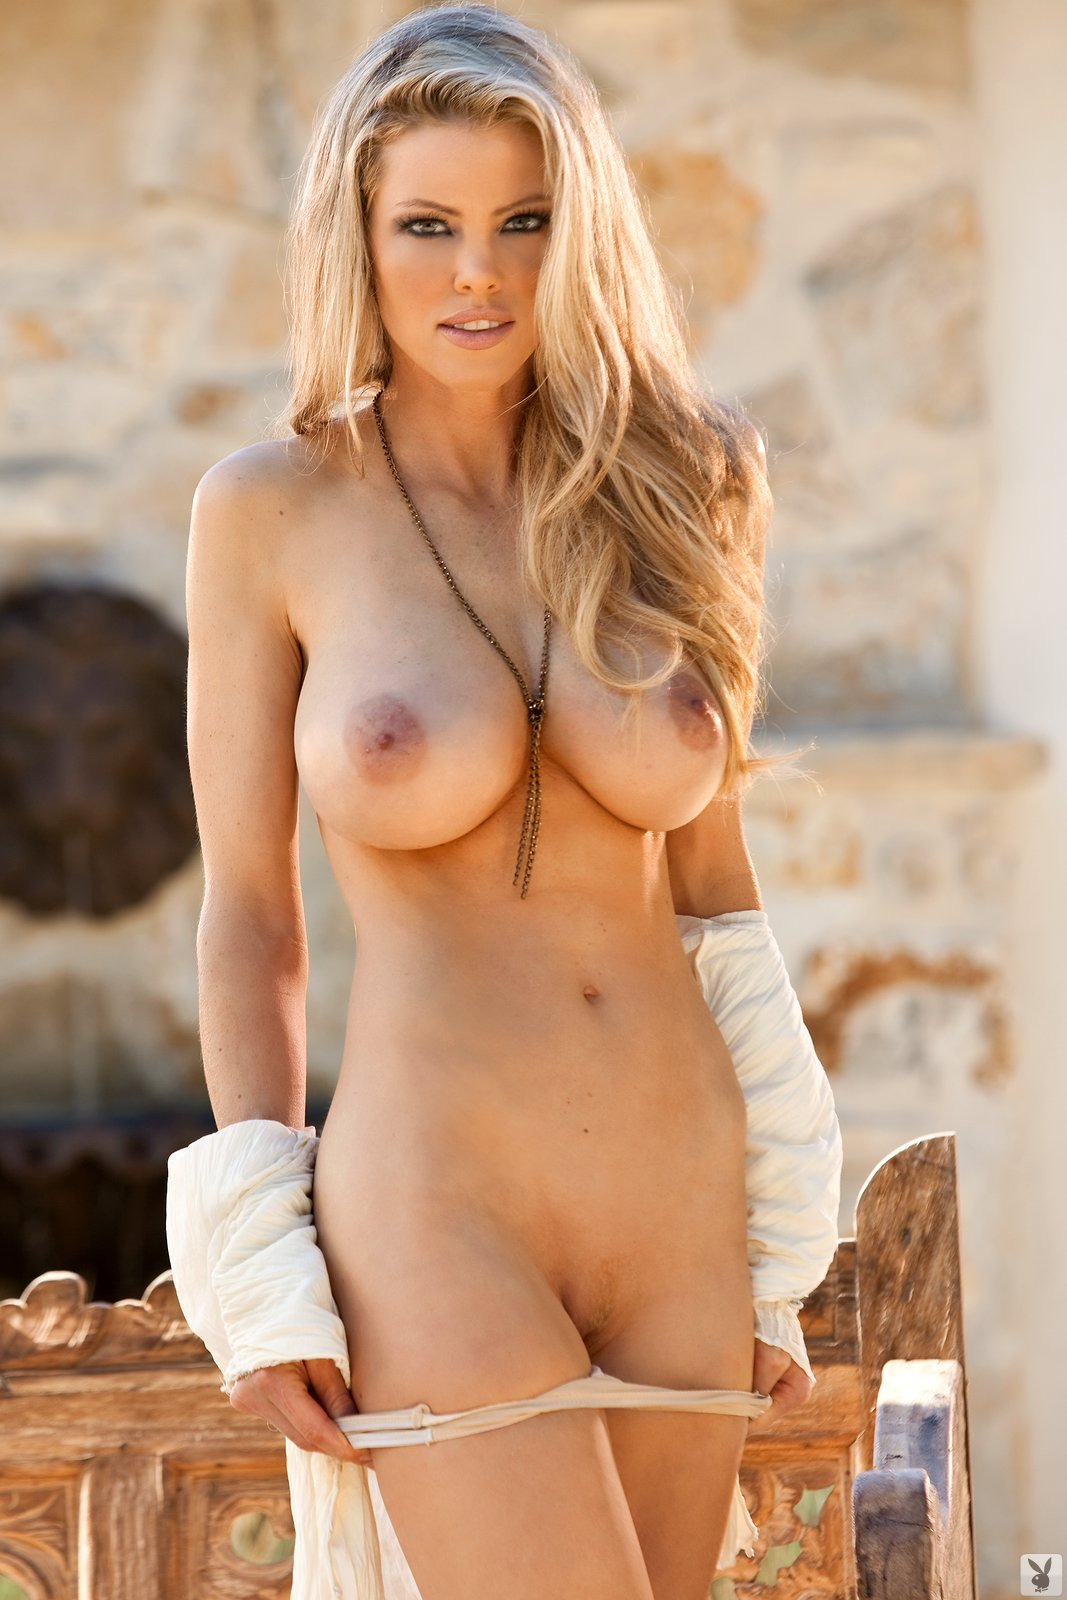 Busty playboy babe dana harem nude in the white room